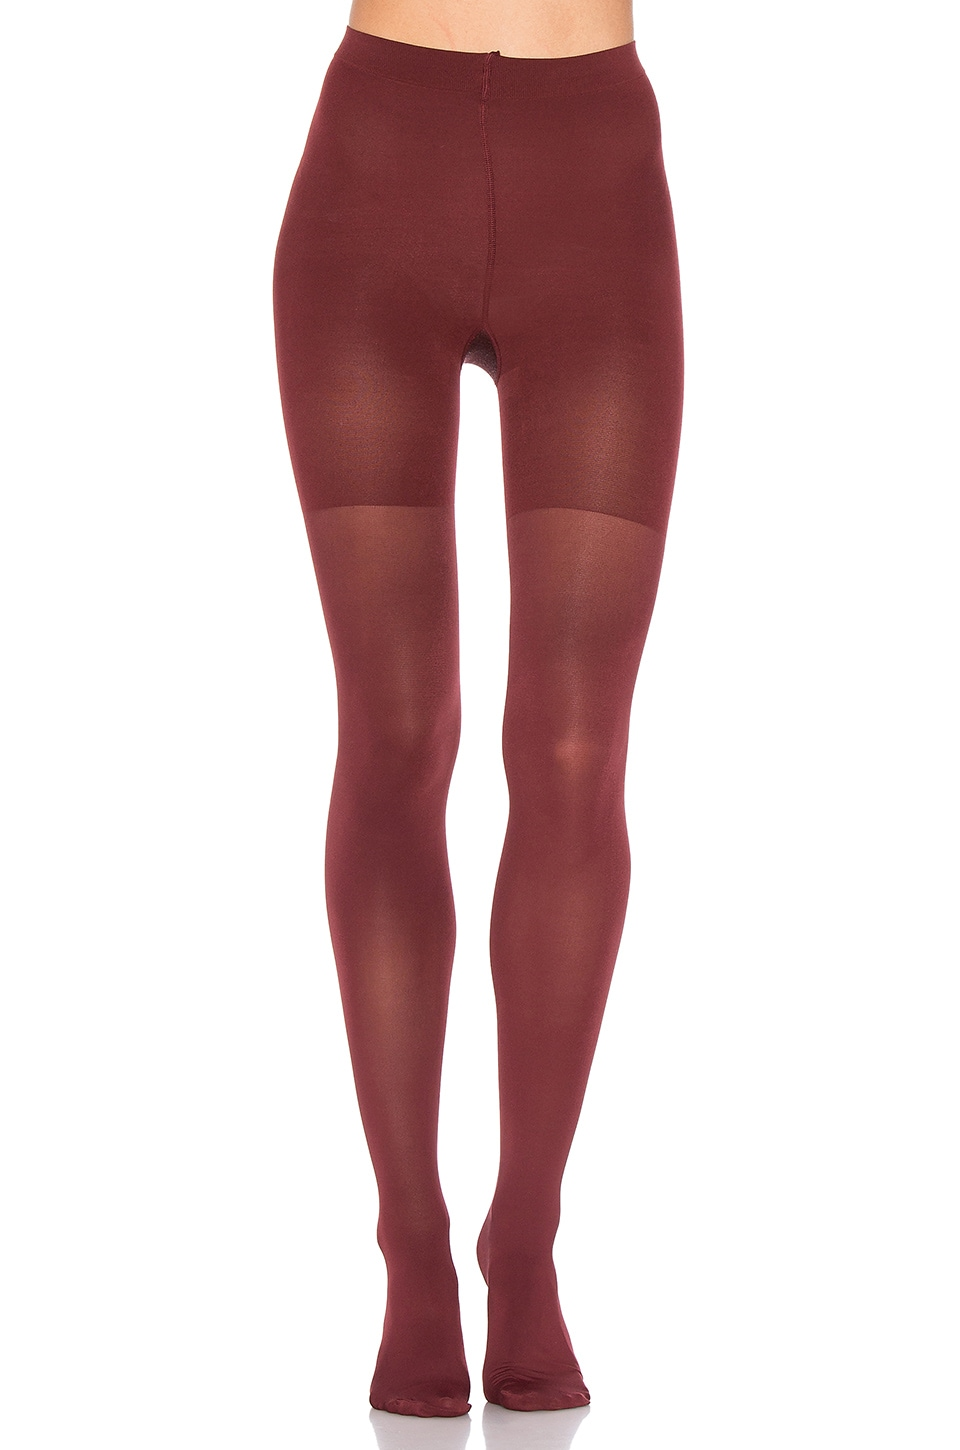 SPANX Luxe Leg Tights in Syrah Wine